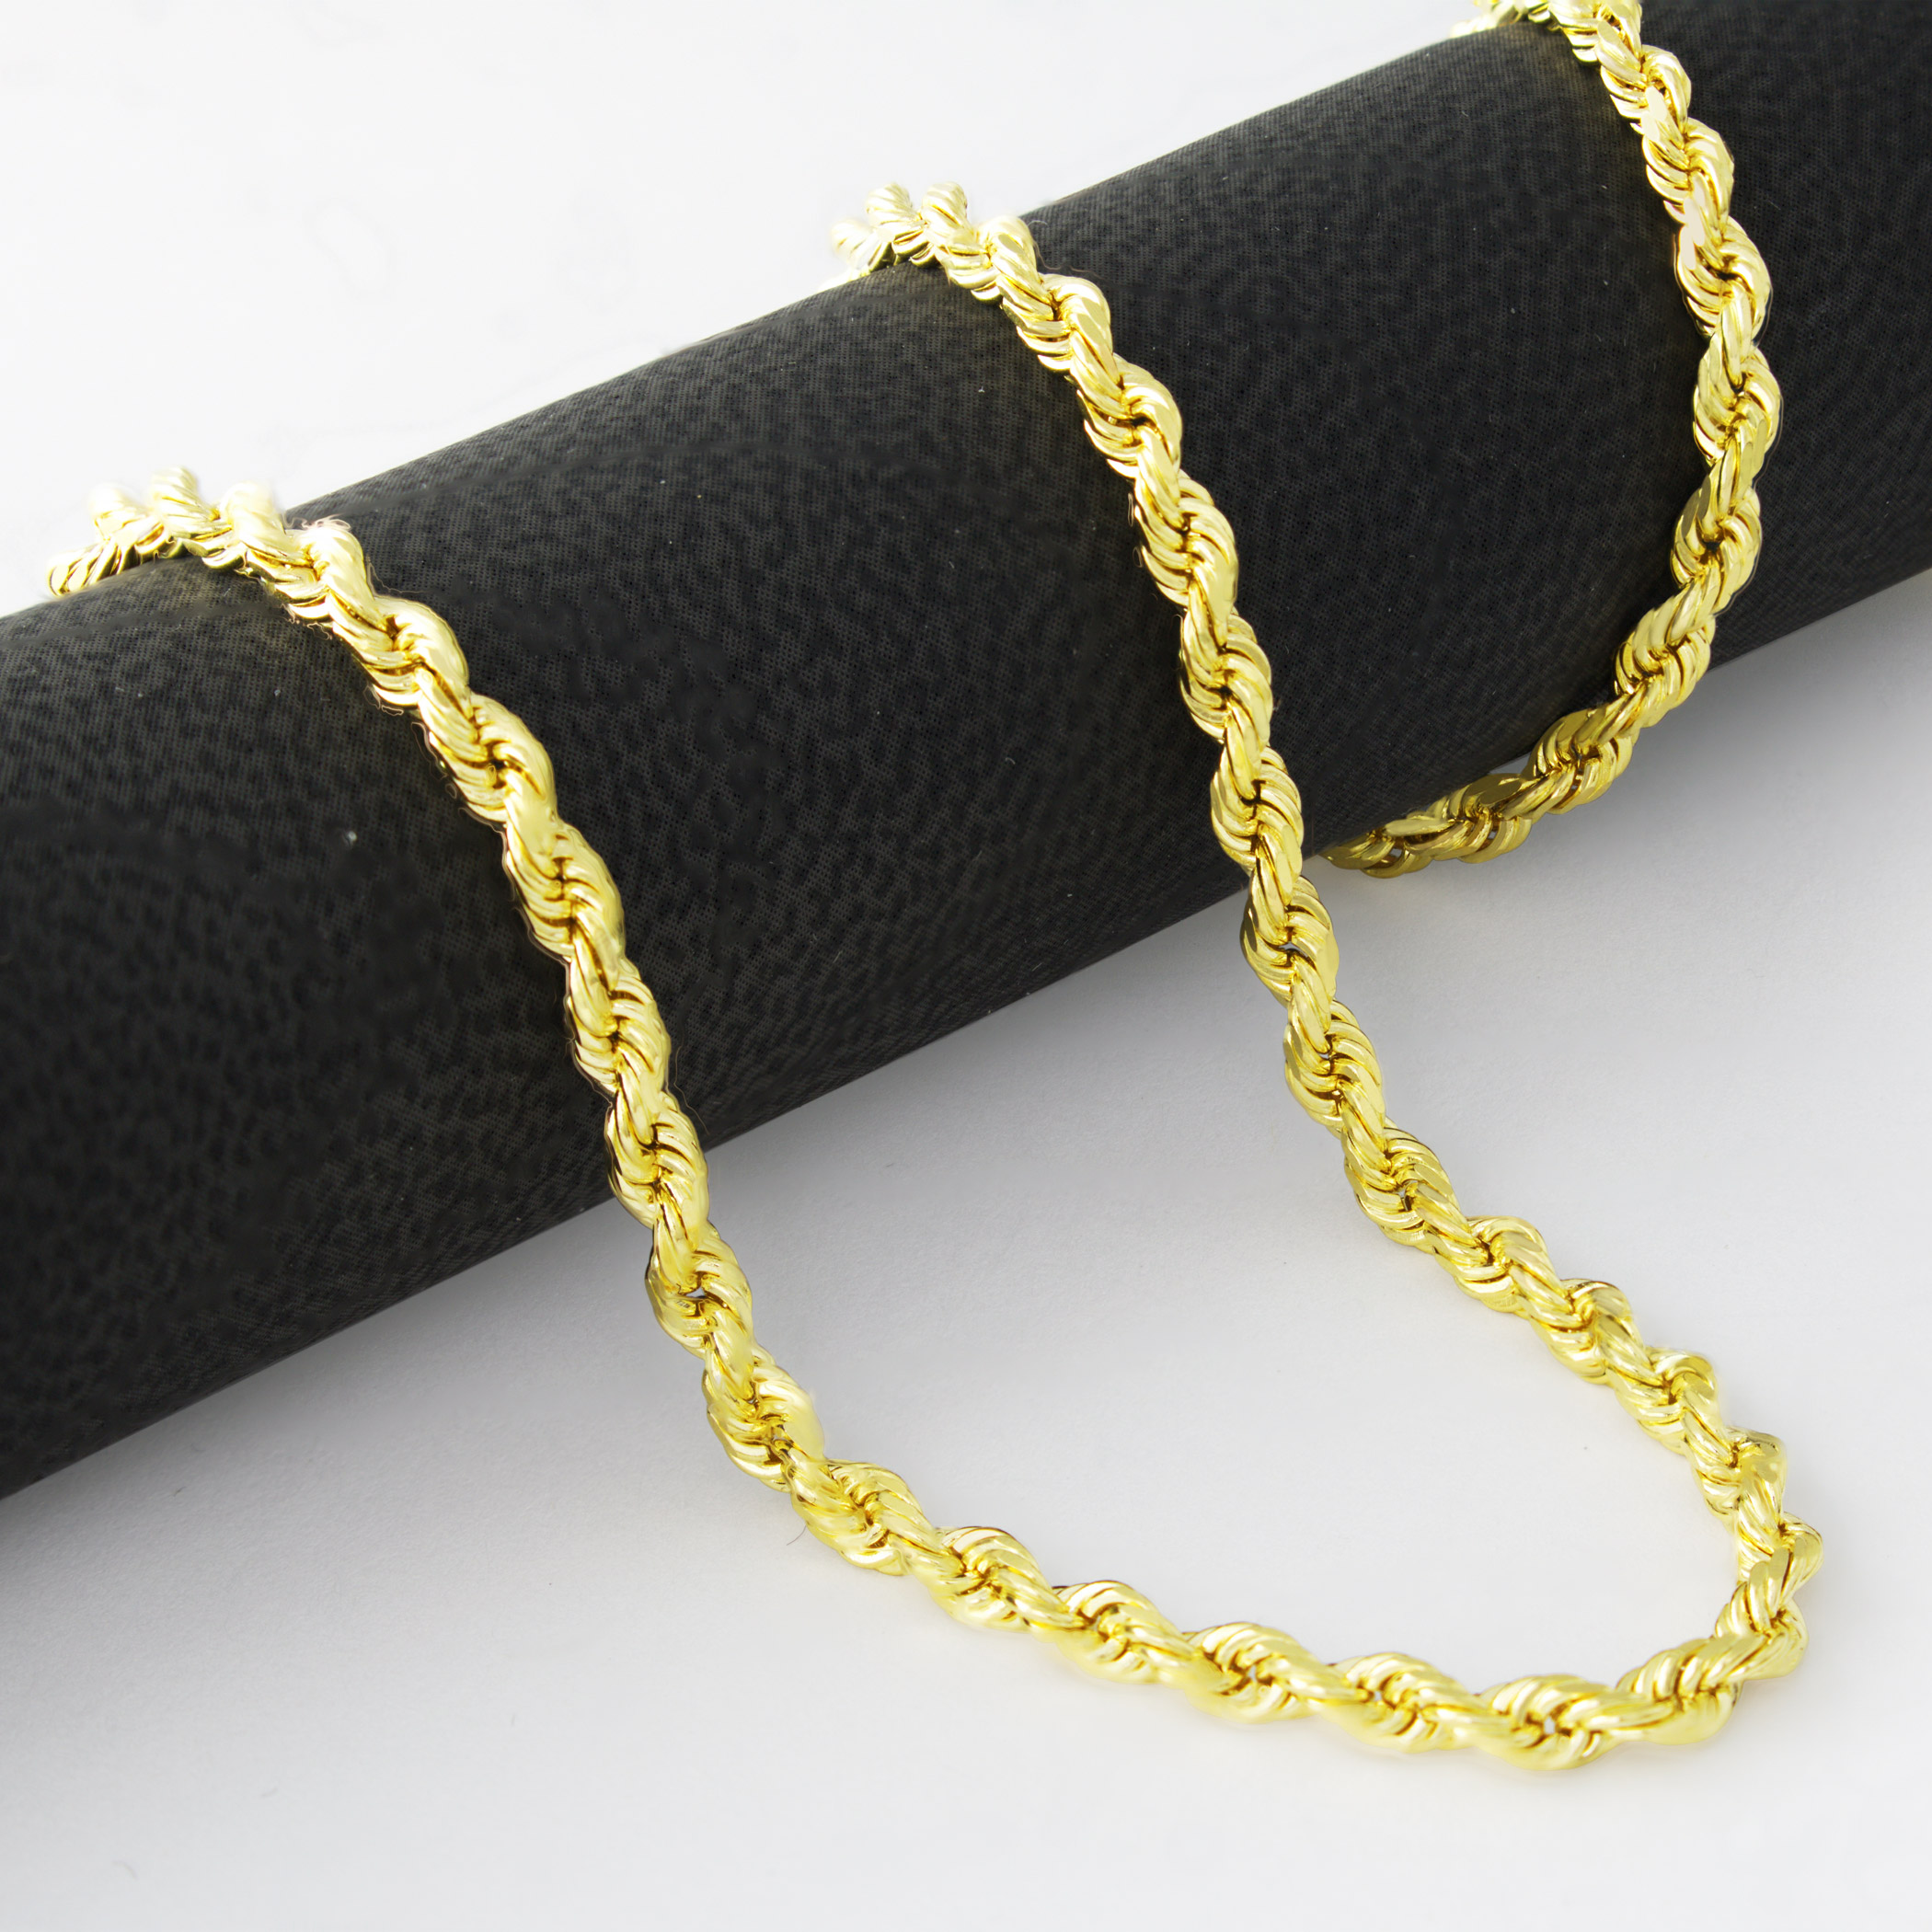 Real-14K-Yellow-Gold-3mm-Diamond-Cut-Rope-Chain-Necklace-Lobster-Clasp-18-034-30-034 thumbnail 17